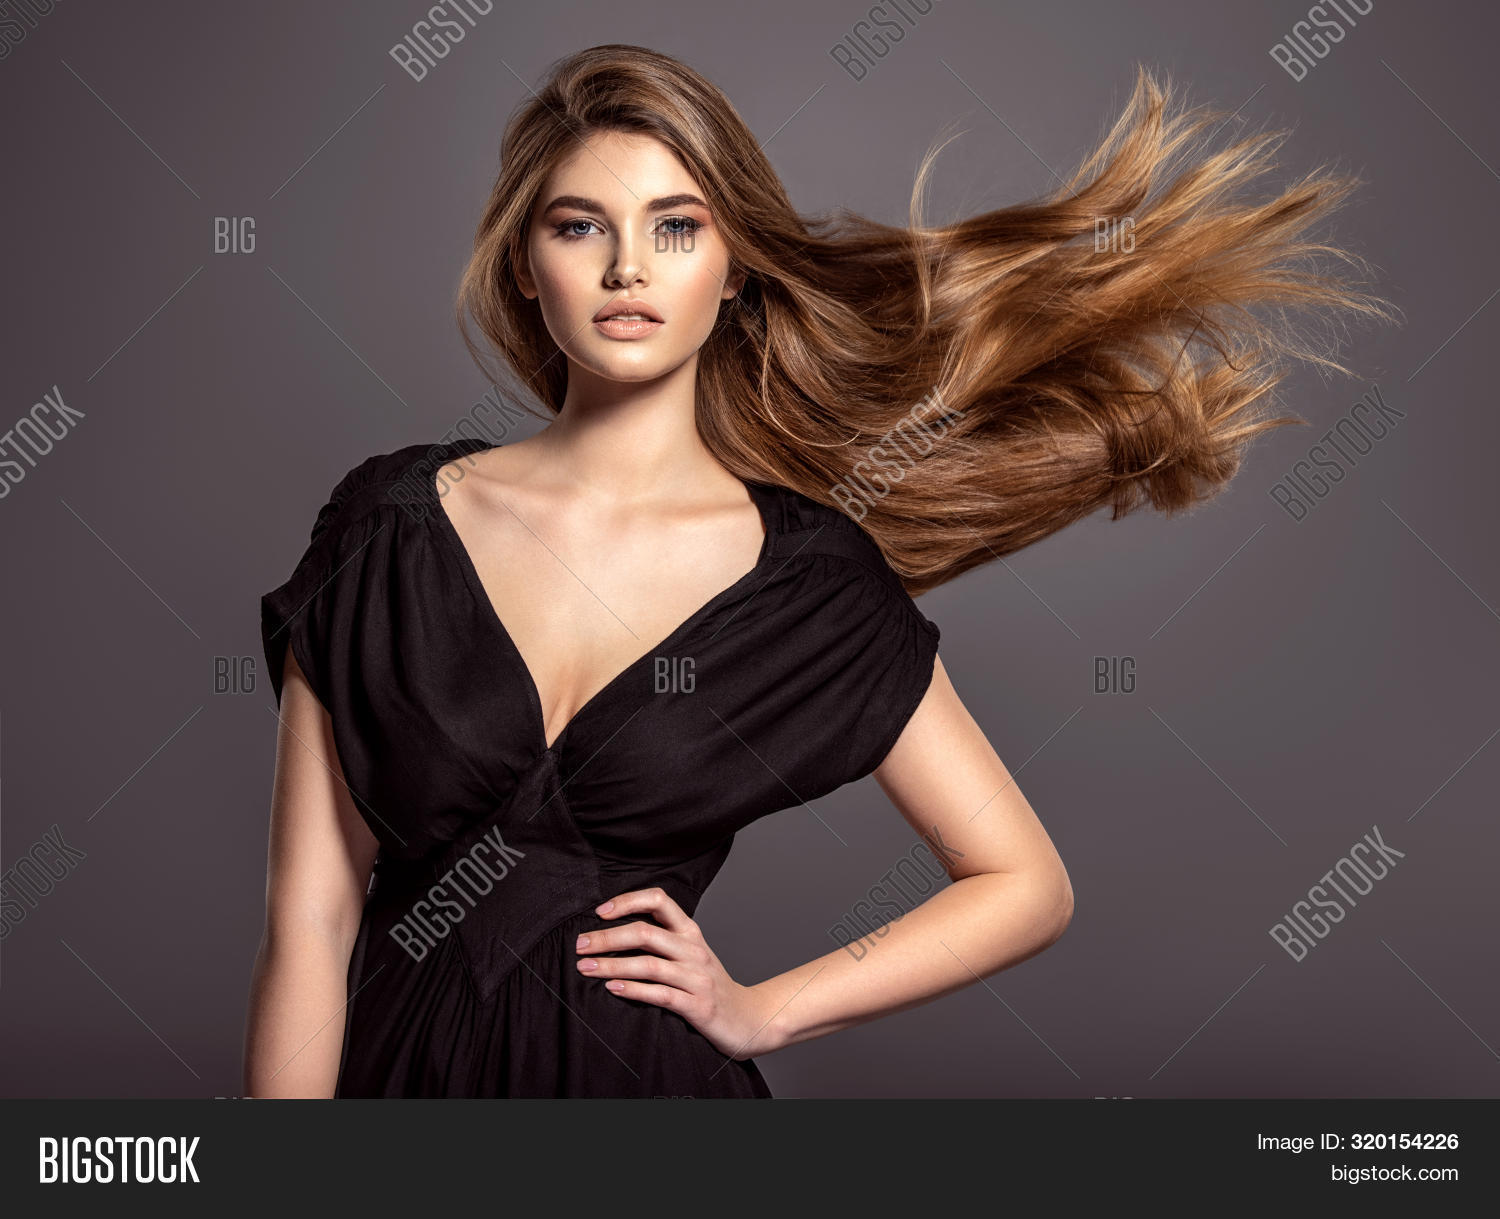 attractive,beautiful,beauty,black,brown,brunette,caucasian,closeup,colors,curly,dress,elegance,elegant,evening,face,fashion,female,girl,glamour,gorgeous,hair,hairstyle,long,long hair,look,make-up,makeup,model,one,portrait,posing,pretty,sexy,studio,stunning,style,stylish,woman,young